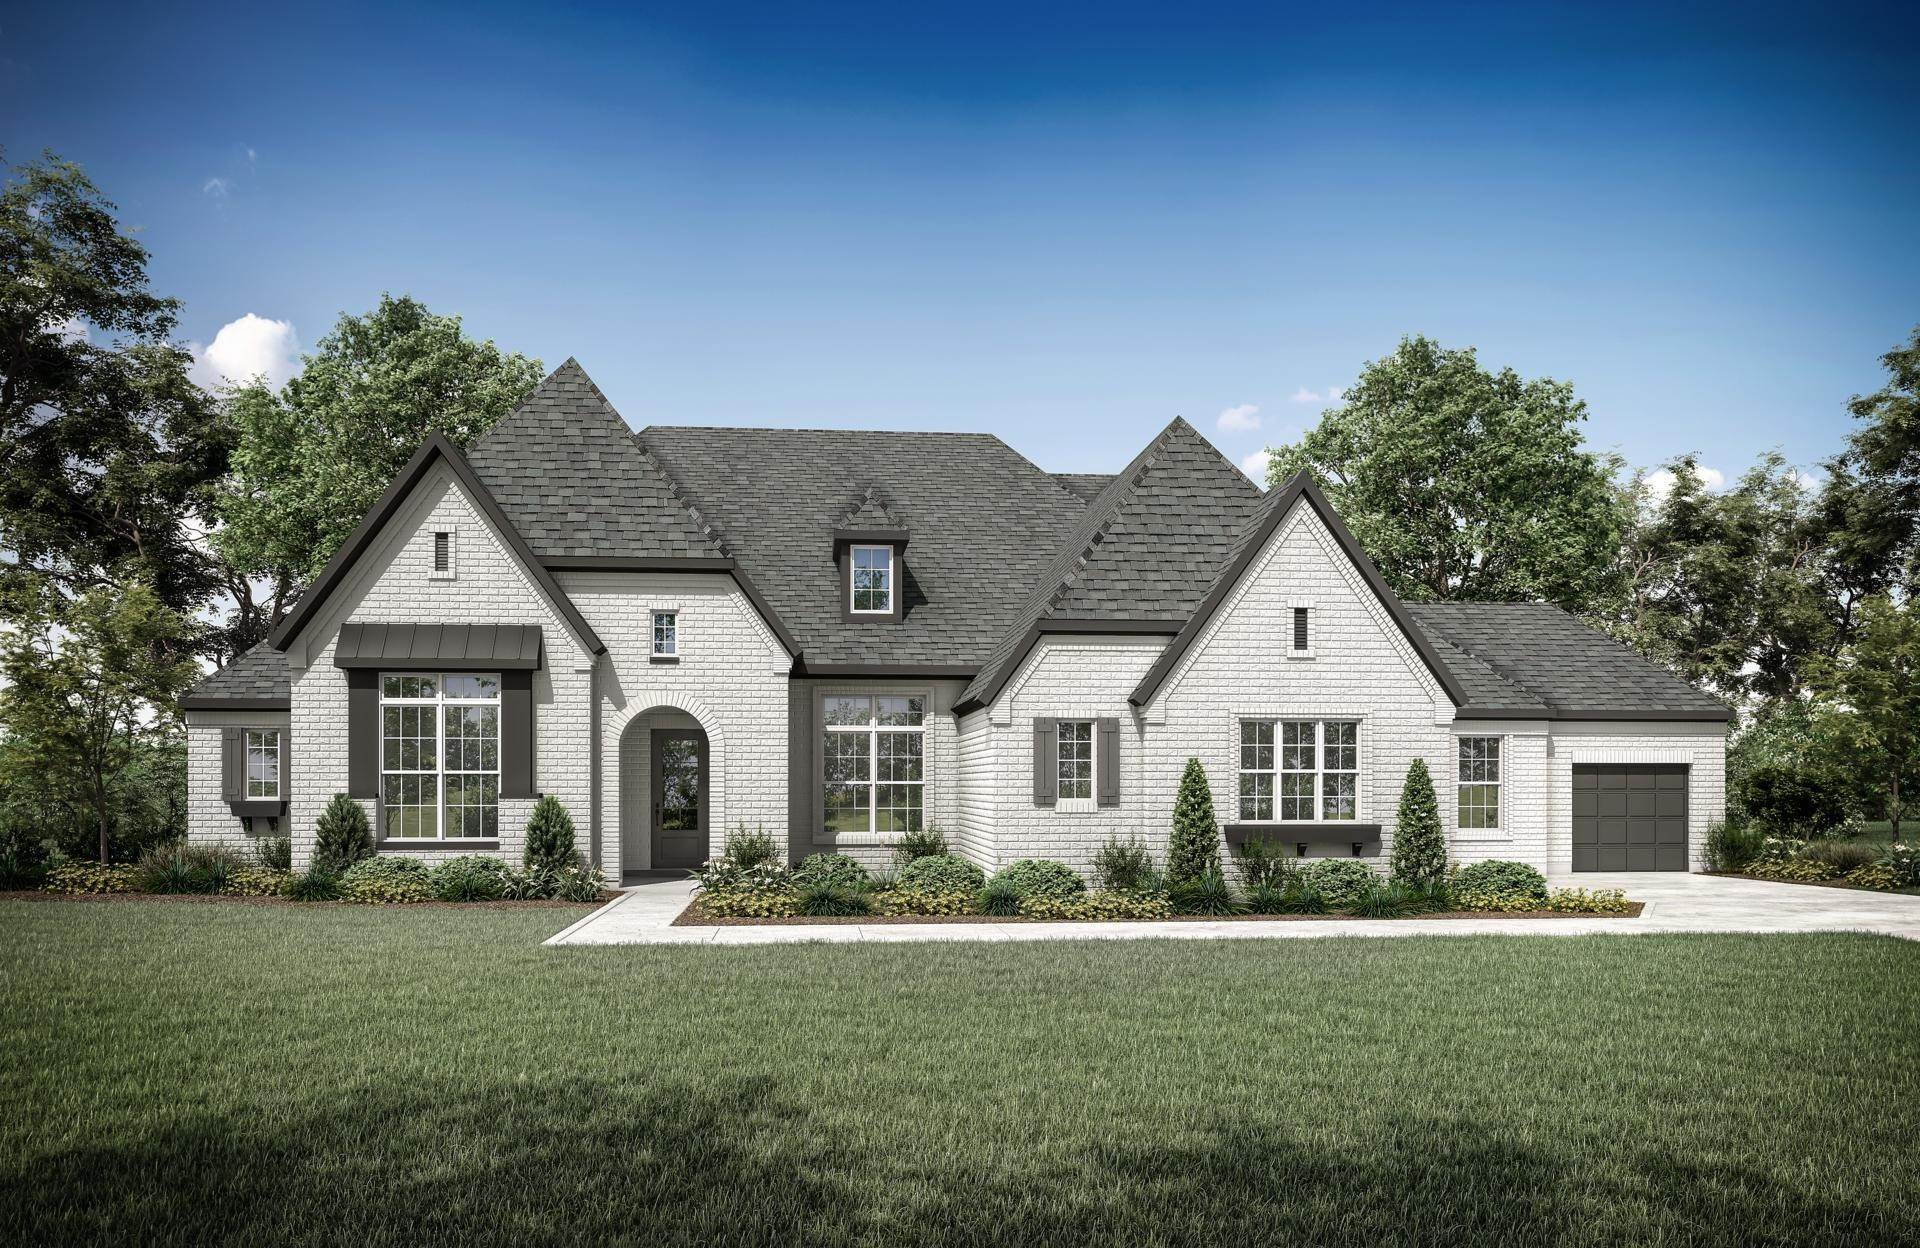 Single Family for Active at Towne Lake 95s - Julian 10919 Dew Meadows Court CYPRESS, TEXAS 77433 UNITED STATES